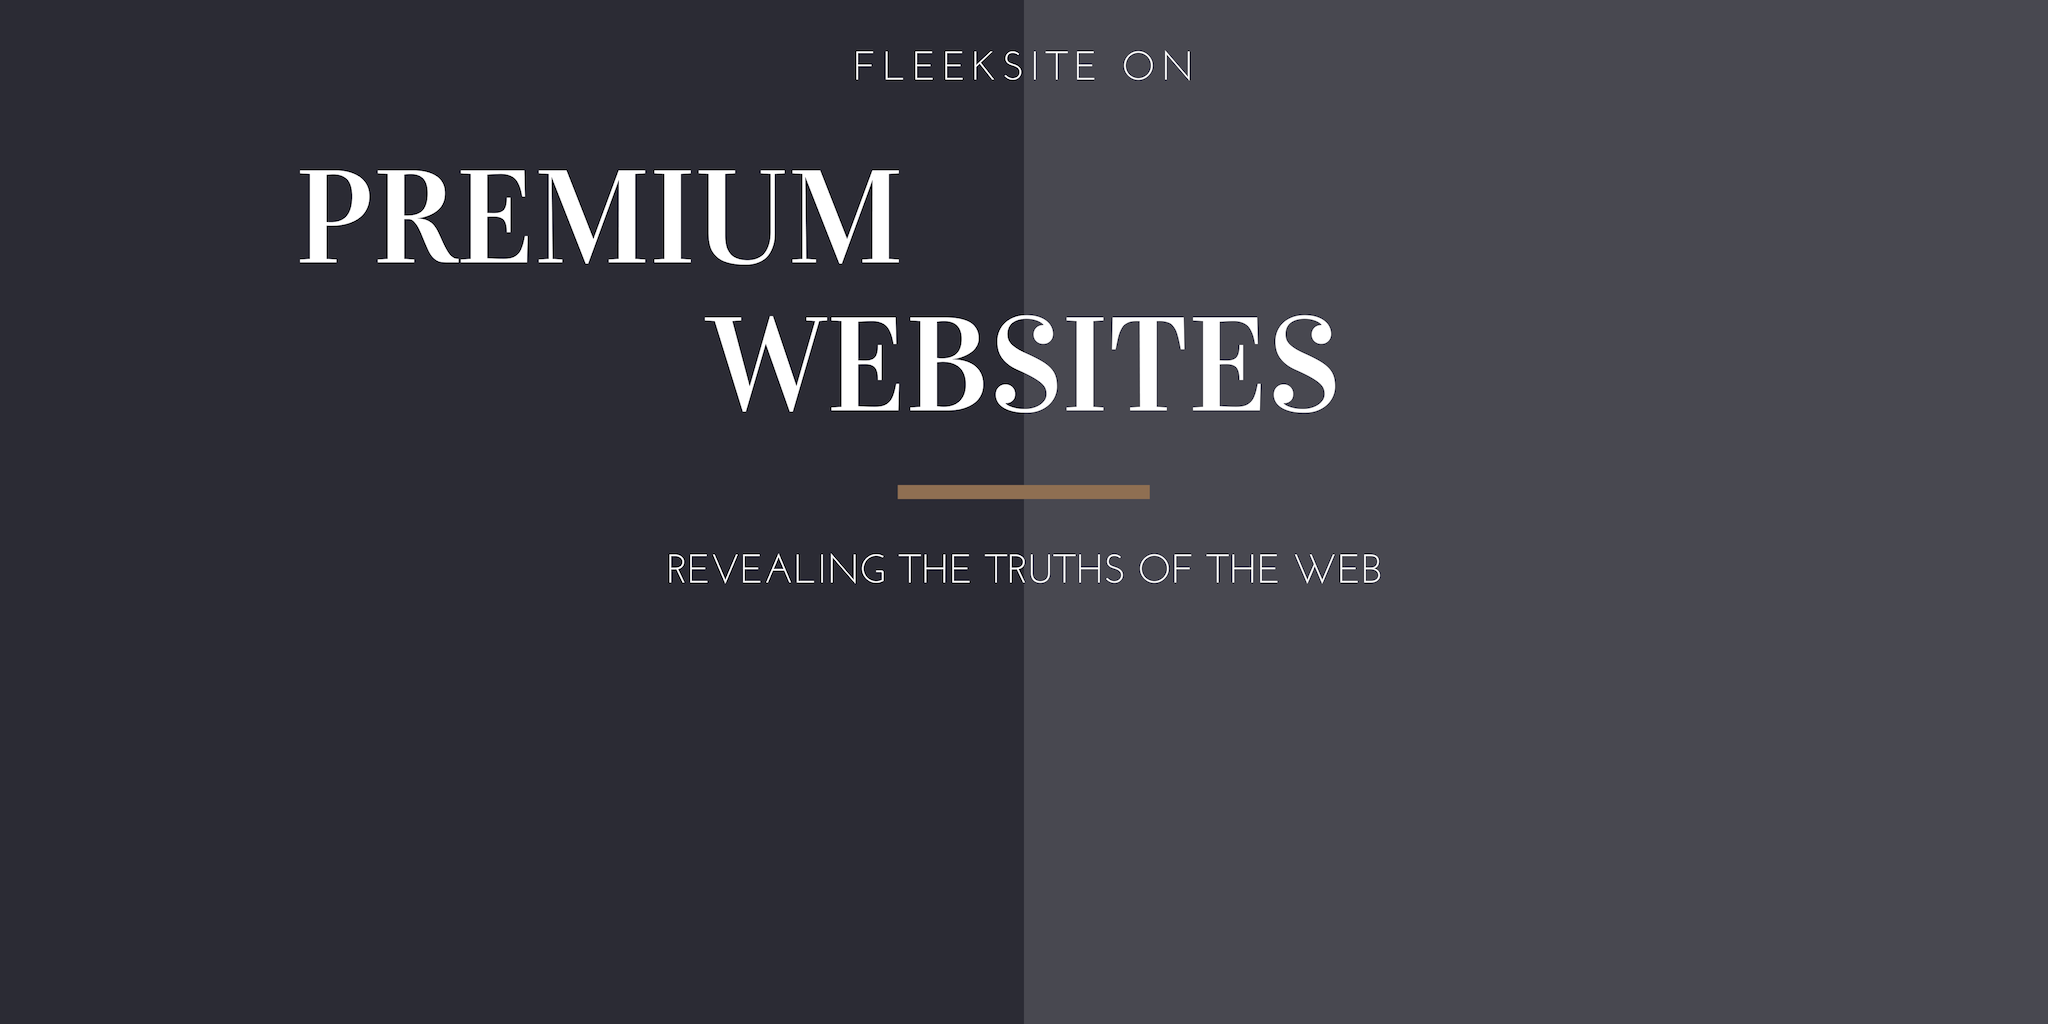 Tailoring Your Premium Website - Part 1